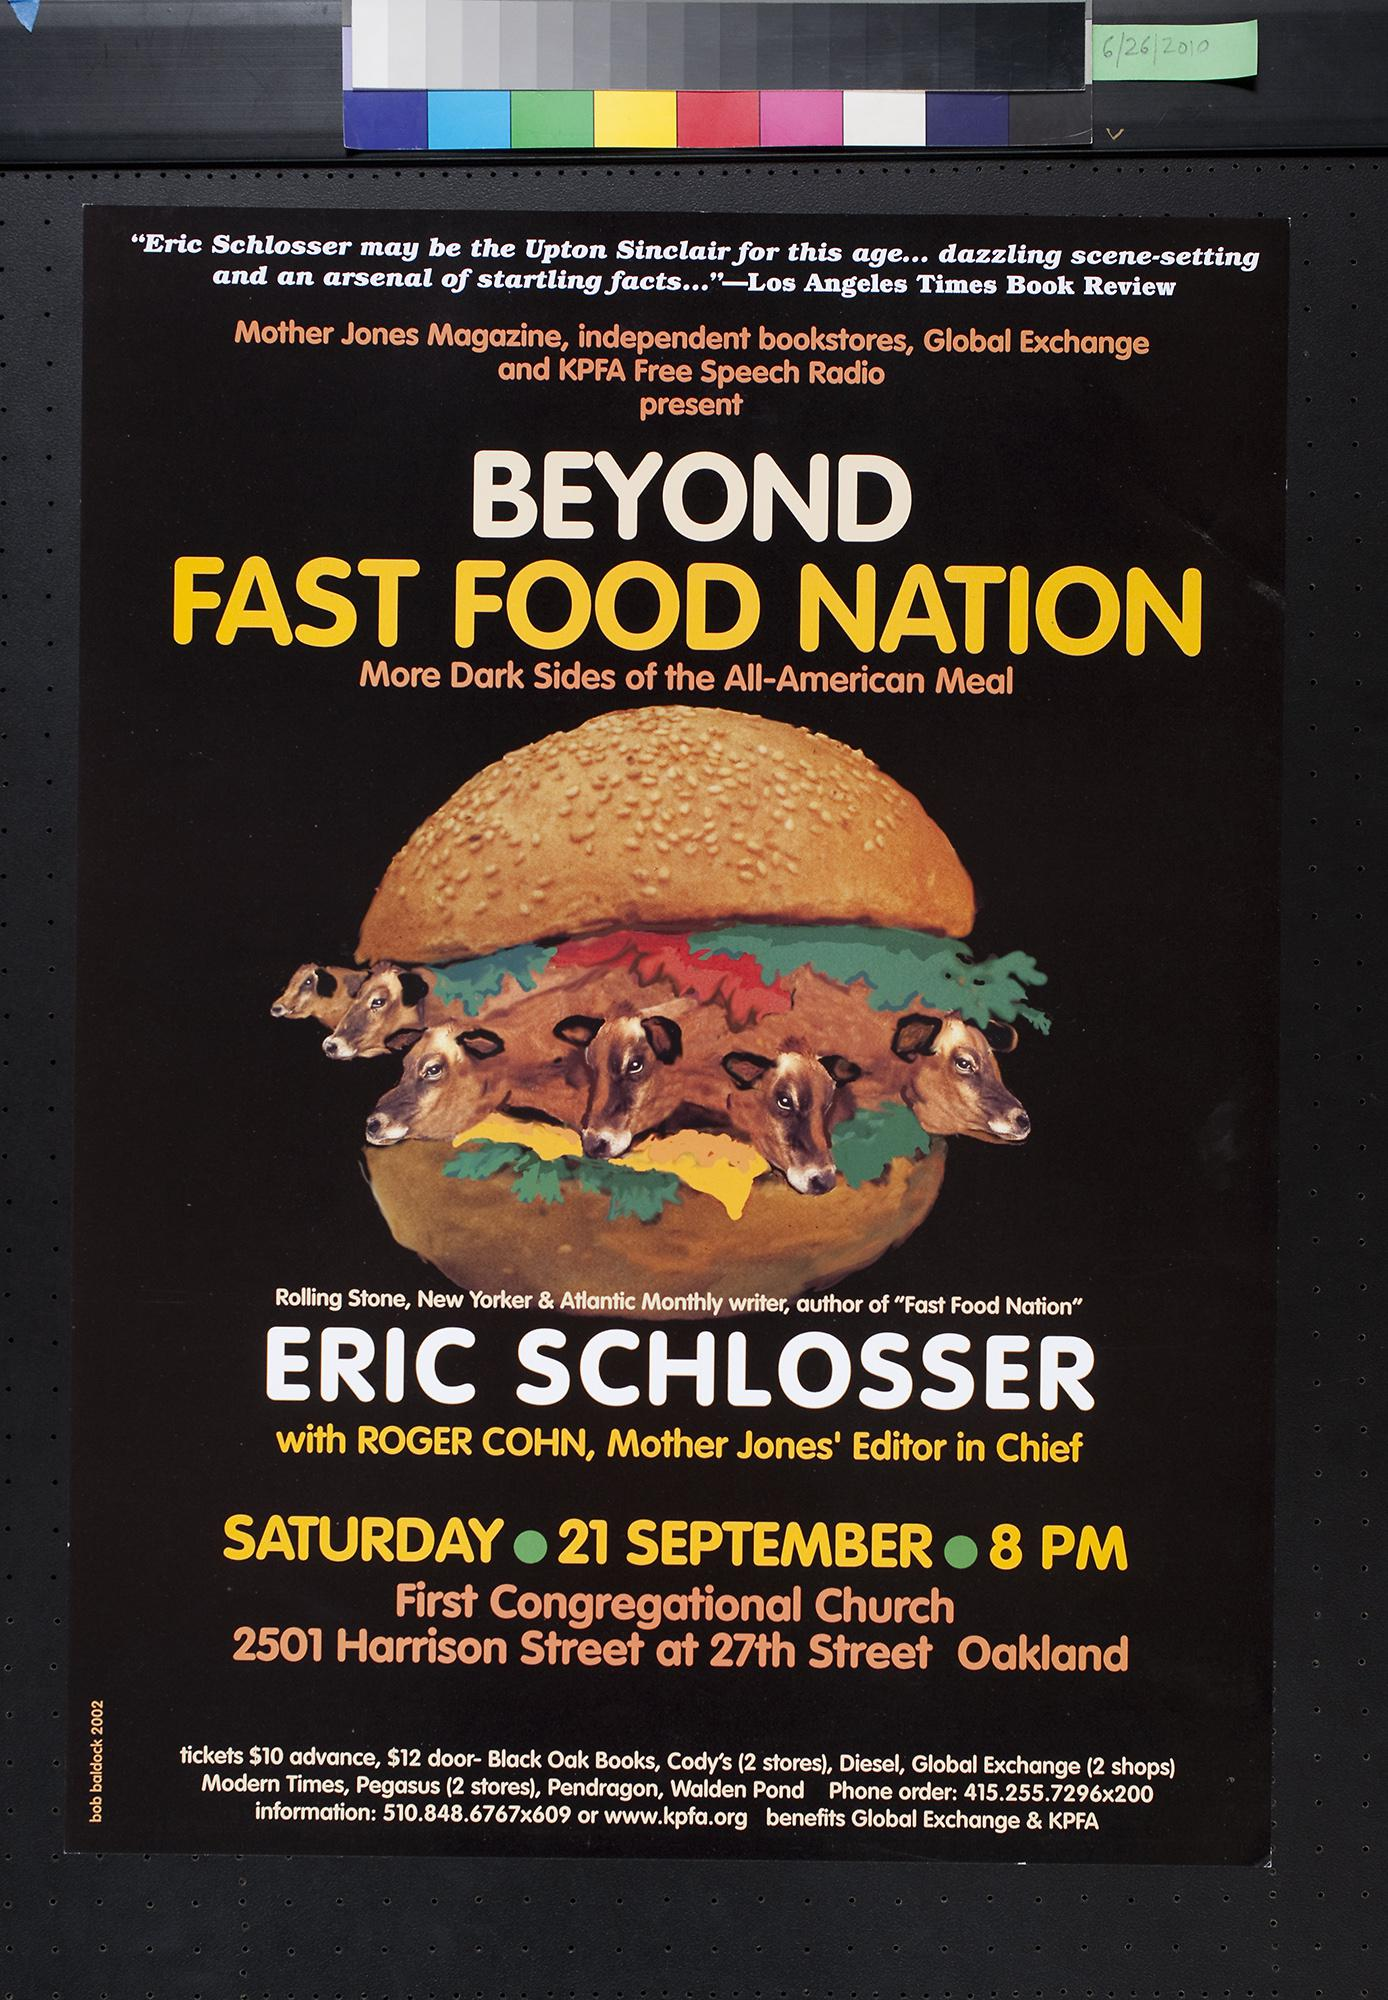 thesis on fast food nation A fast food nation research paper attempts to present a brief analytical review of eric schlosser's book fast food nation the proliferation of fast food restaurants has had a negative impact on the nation and that the best the following are good theses for your fast food nation research paper.